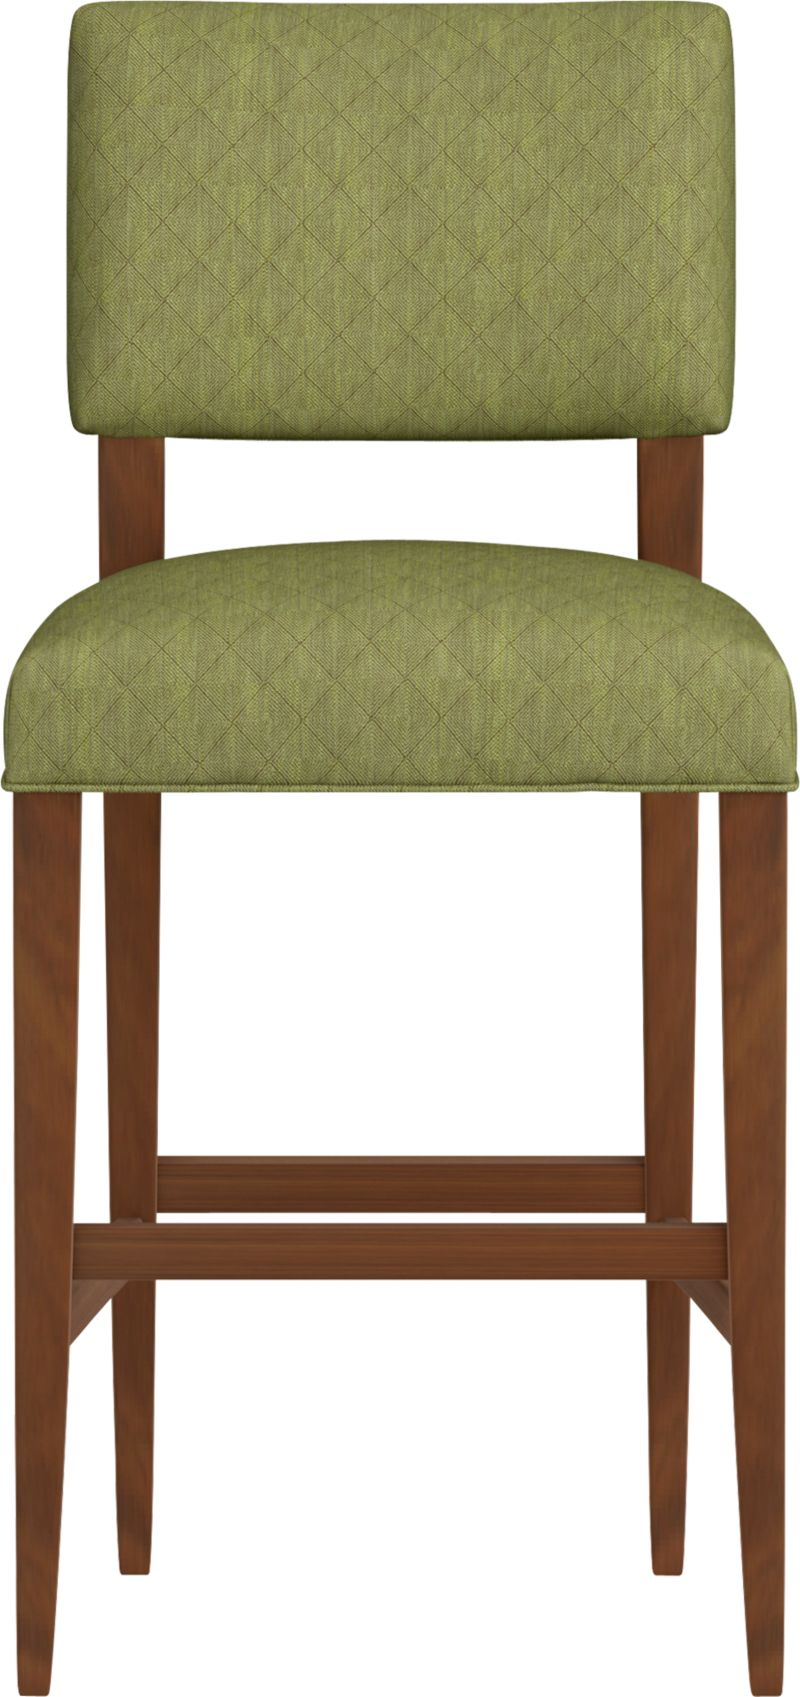 """Cody receives your guests with all the generous proportions and comfort of a fully upholstered barstool, but keeps the room light and airy with its open back design and minimal lines. The look is soft and modern: a tight-cushioned but very padded seat and contoured back made for lingering, and elegant tapering solid hardwood legs.<br /><br />After you place your order, we will send a fabric swatch via next day air for your final approval. We will contact you to verify both your receipt and approval of the fabric swatch before finalizing your order.<br /><br /><NEWTAG/><ul><li>Eco-friendly construction</li><li>Certified sustainable, kiln-dried hardwood frame</li><li>Tight seat and back cushions with soy-based foam and web suspension</li><li>Rayon-polyester-cotton blend fabric with self welt detail</li><li>32""""H seat sized for bars</li><li>Made in North Carolina, USA</li></ul>"""